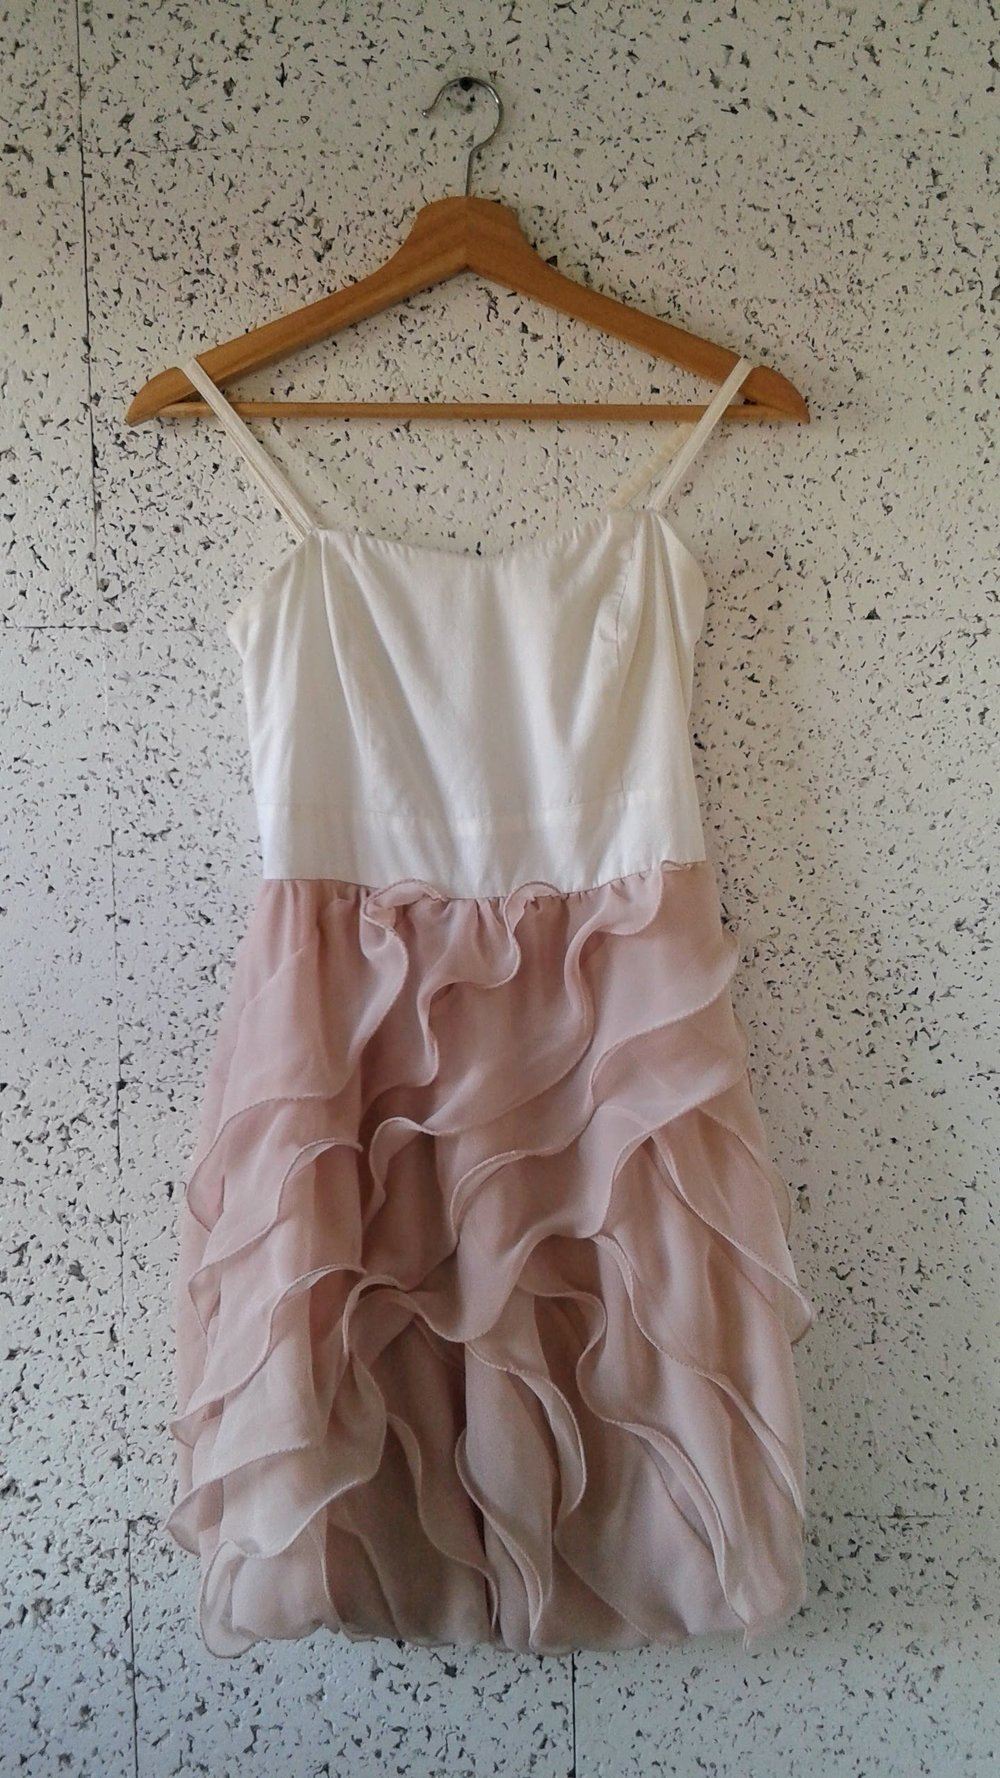 Vero Moda dress; Size S, $26